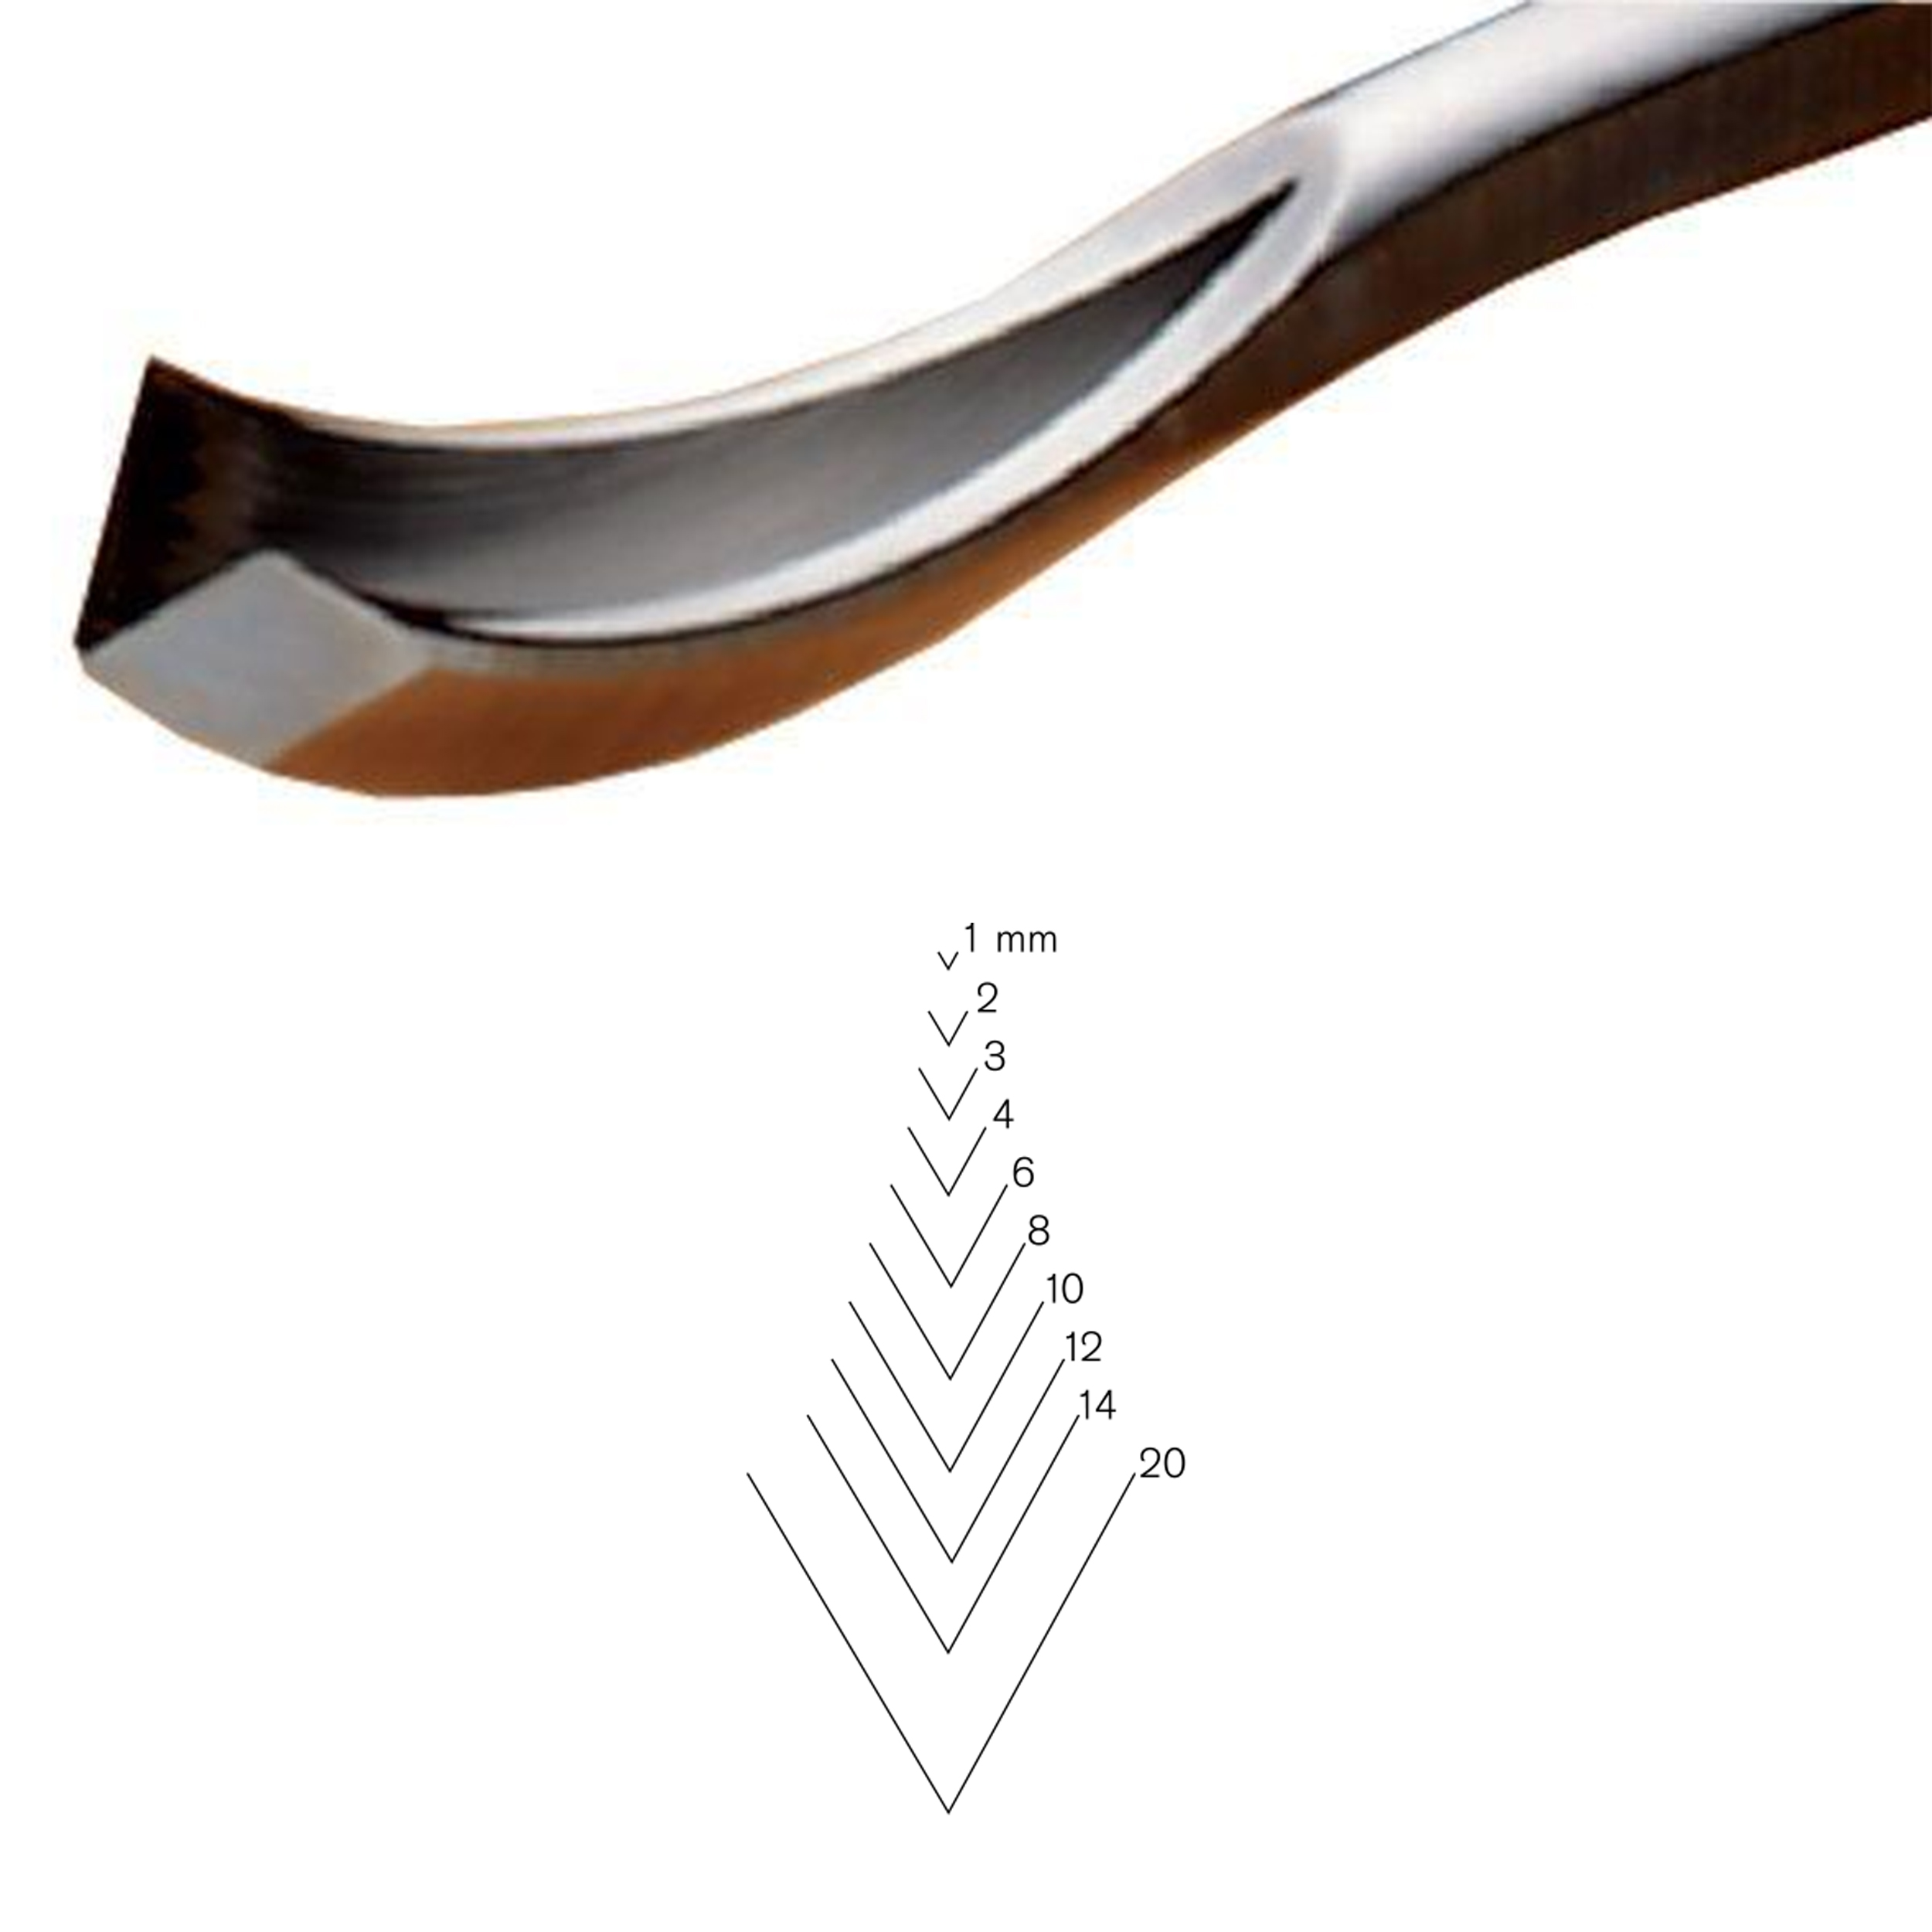 #12 Sweep Bent V-Parting Tool, 3 mm, Full Size